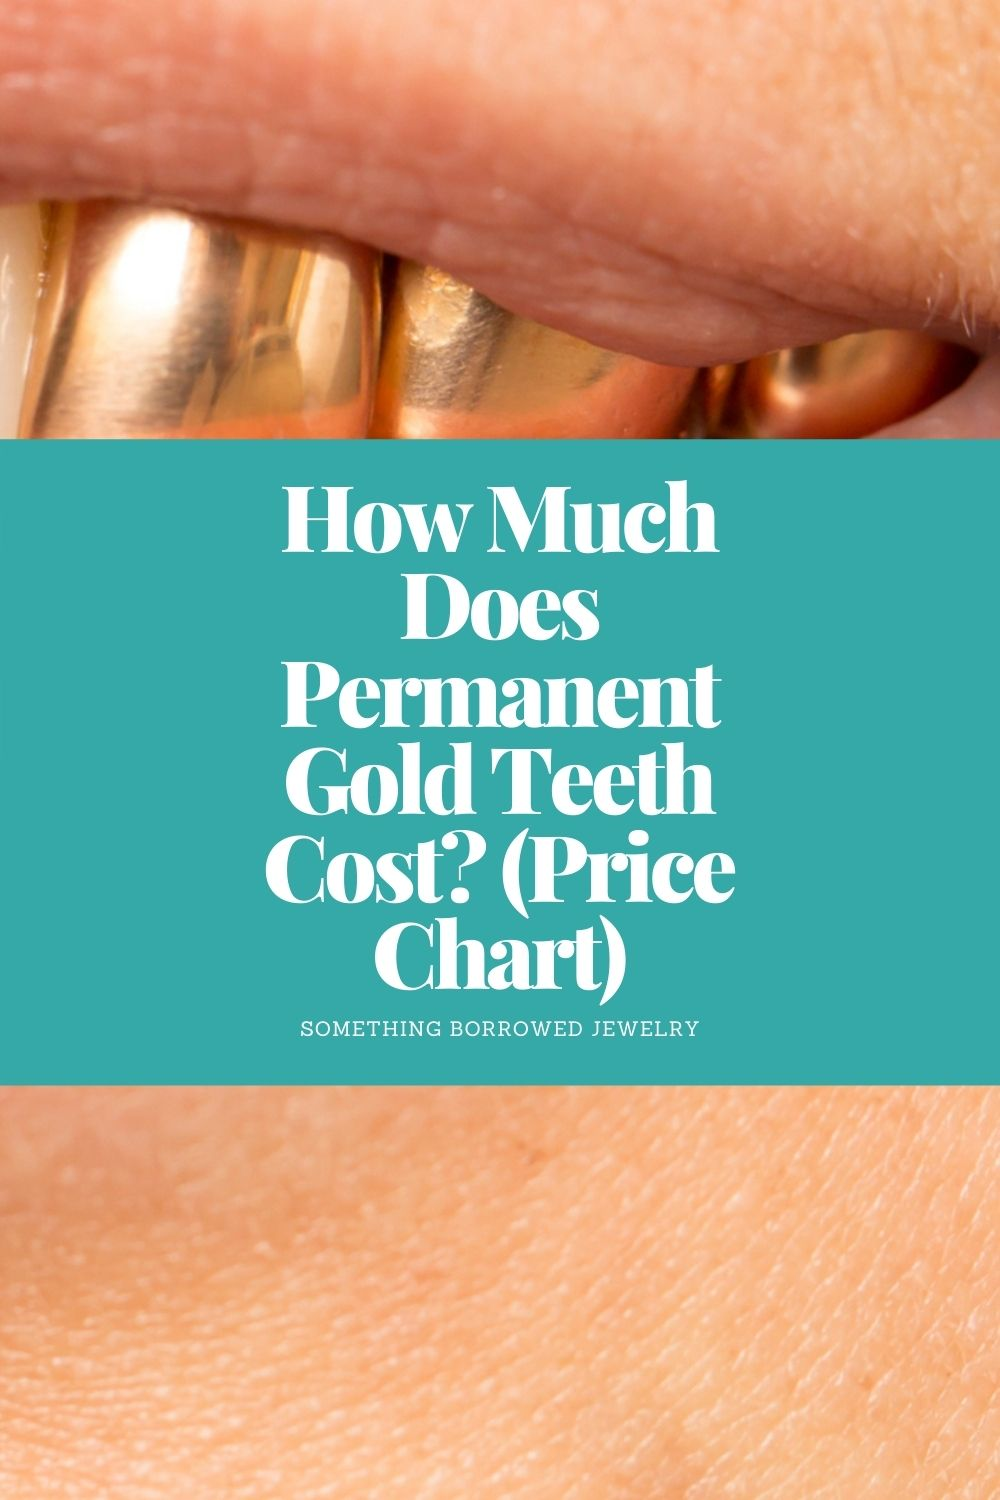 How Much Does Permanent Gold Teeth Cost (Price Chart) pin